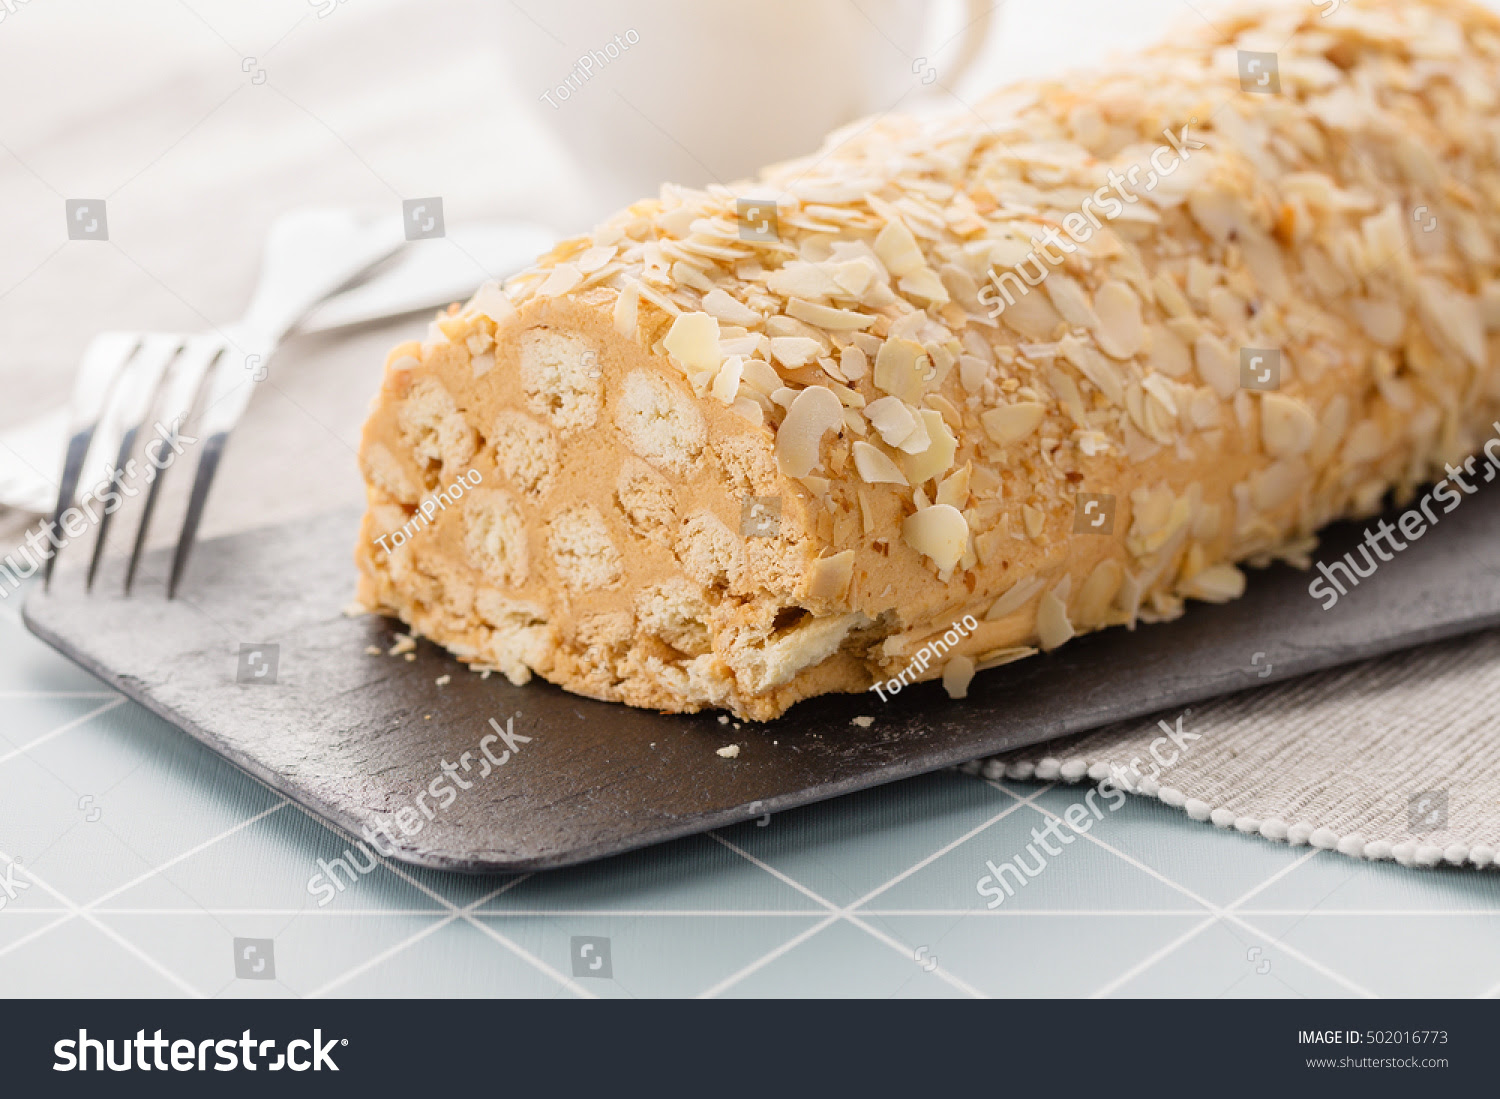 http://www.shutterstock.com/pic-502016773/stock-photo-original-recipe-napoleon-cake-roll-decorated-with-almond-flakes-shallow-focus.html?